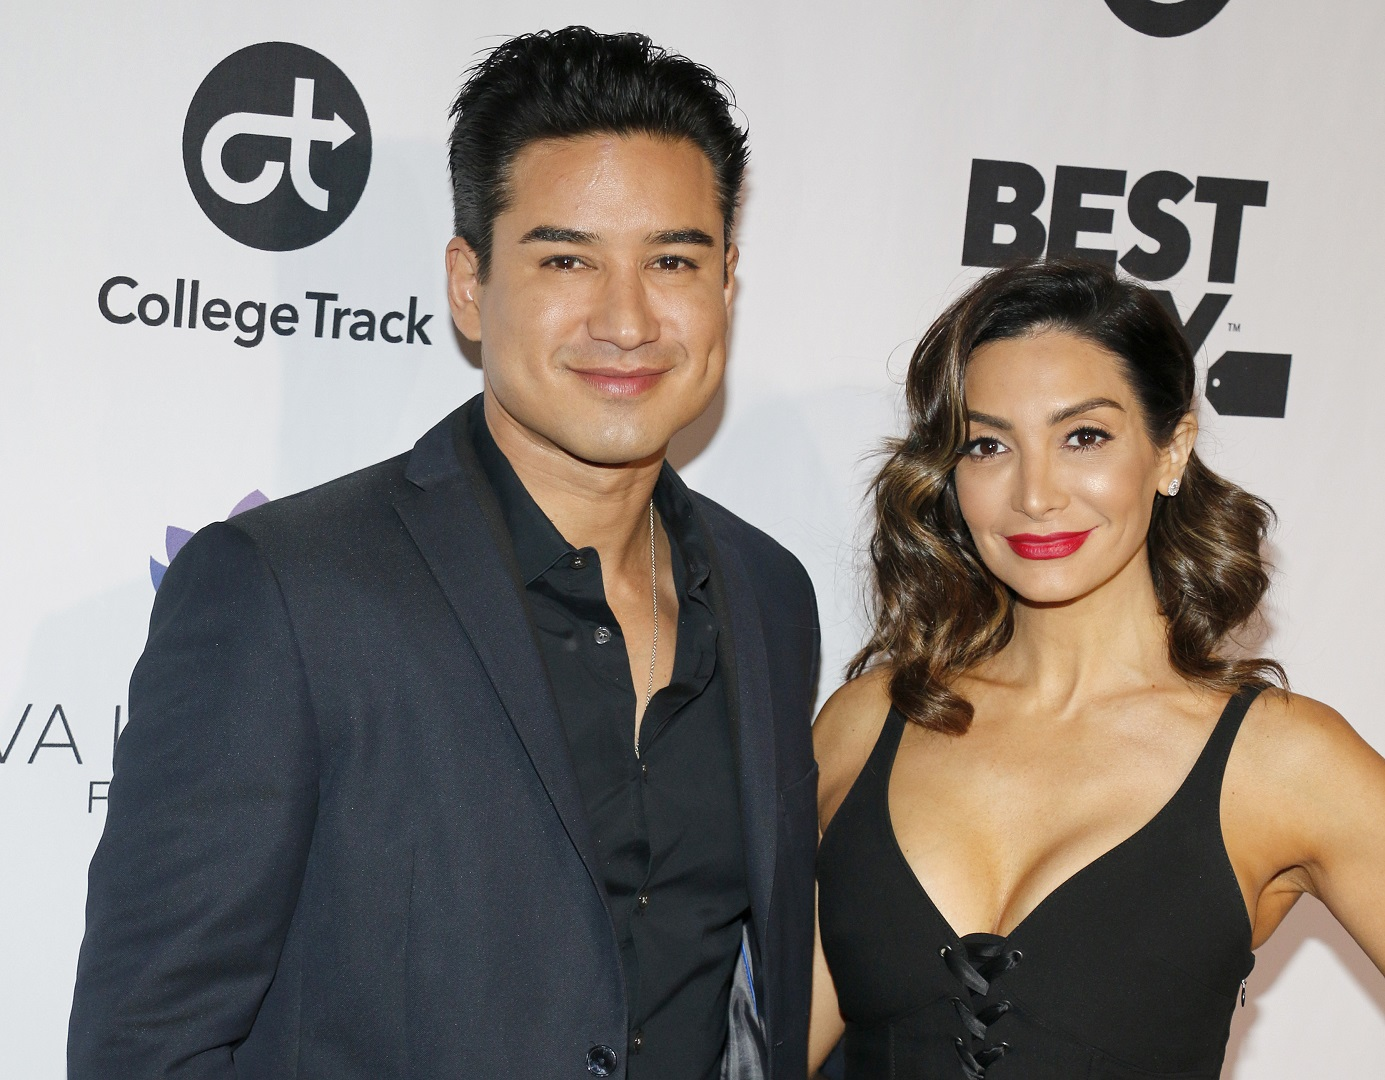 Mario Lopez and Wife Courtney Red Lip 2018